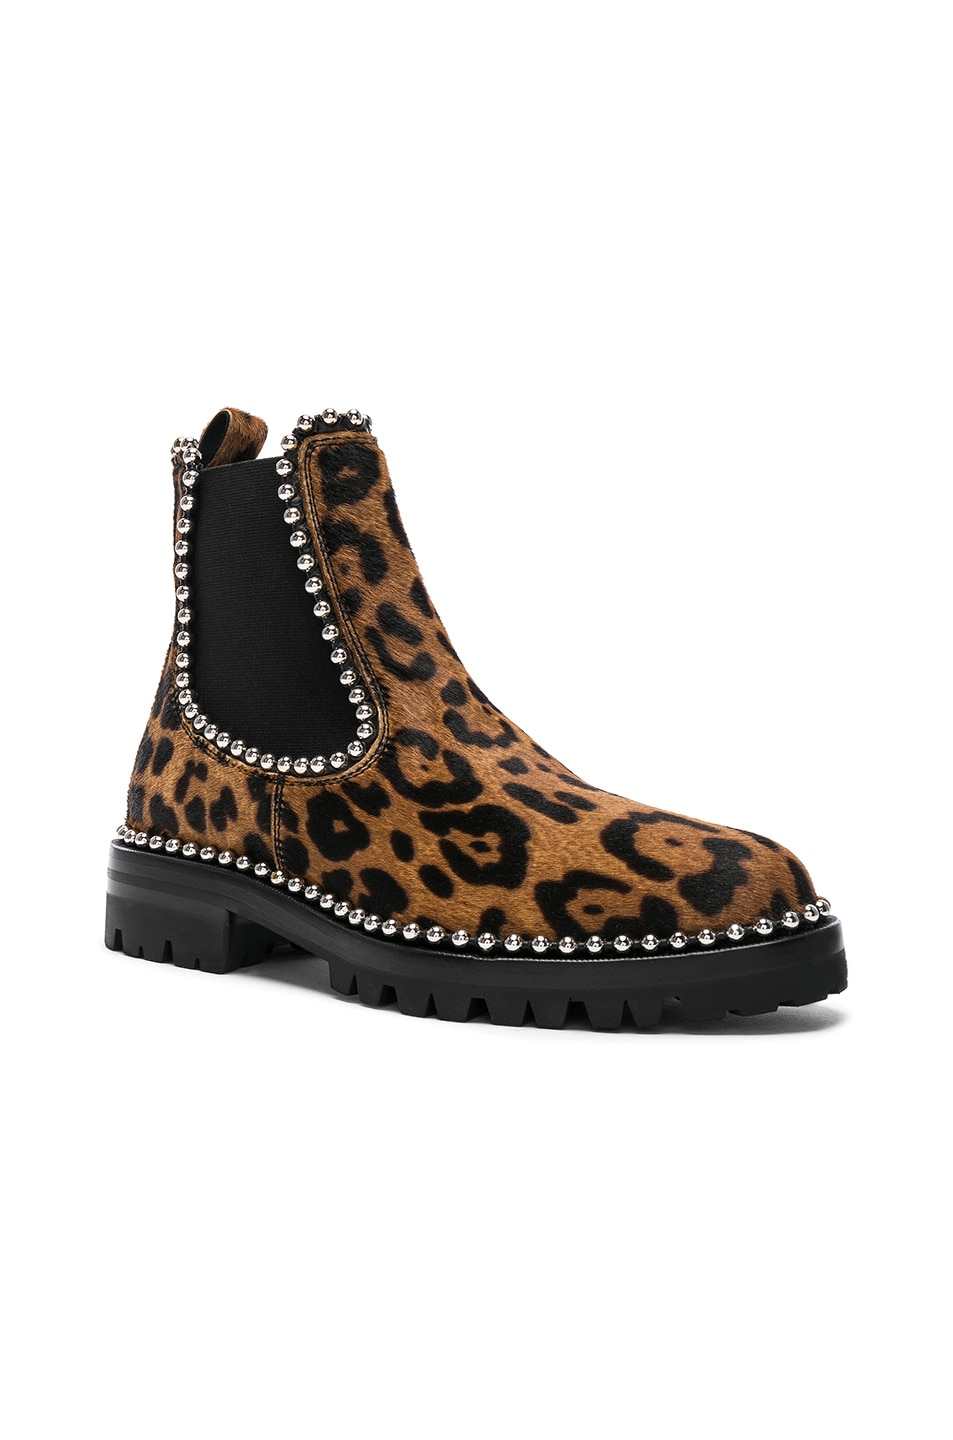 728f86fa06de Image 2 of Alexander Wang Printed Calf Hair Spencer Boots in Leopard